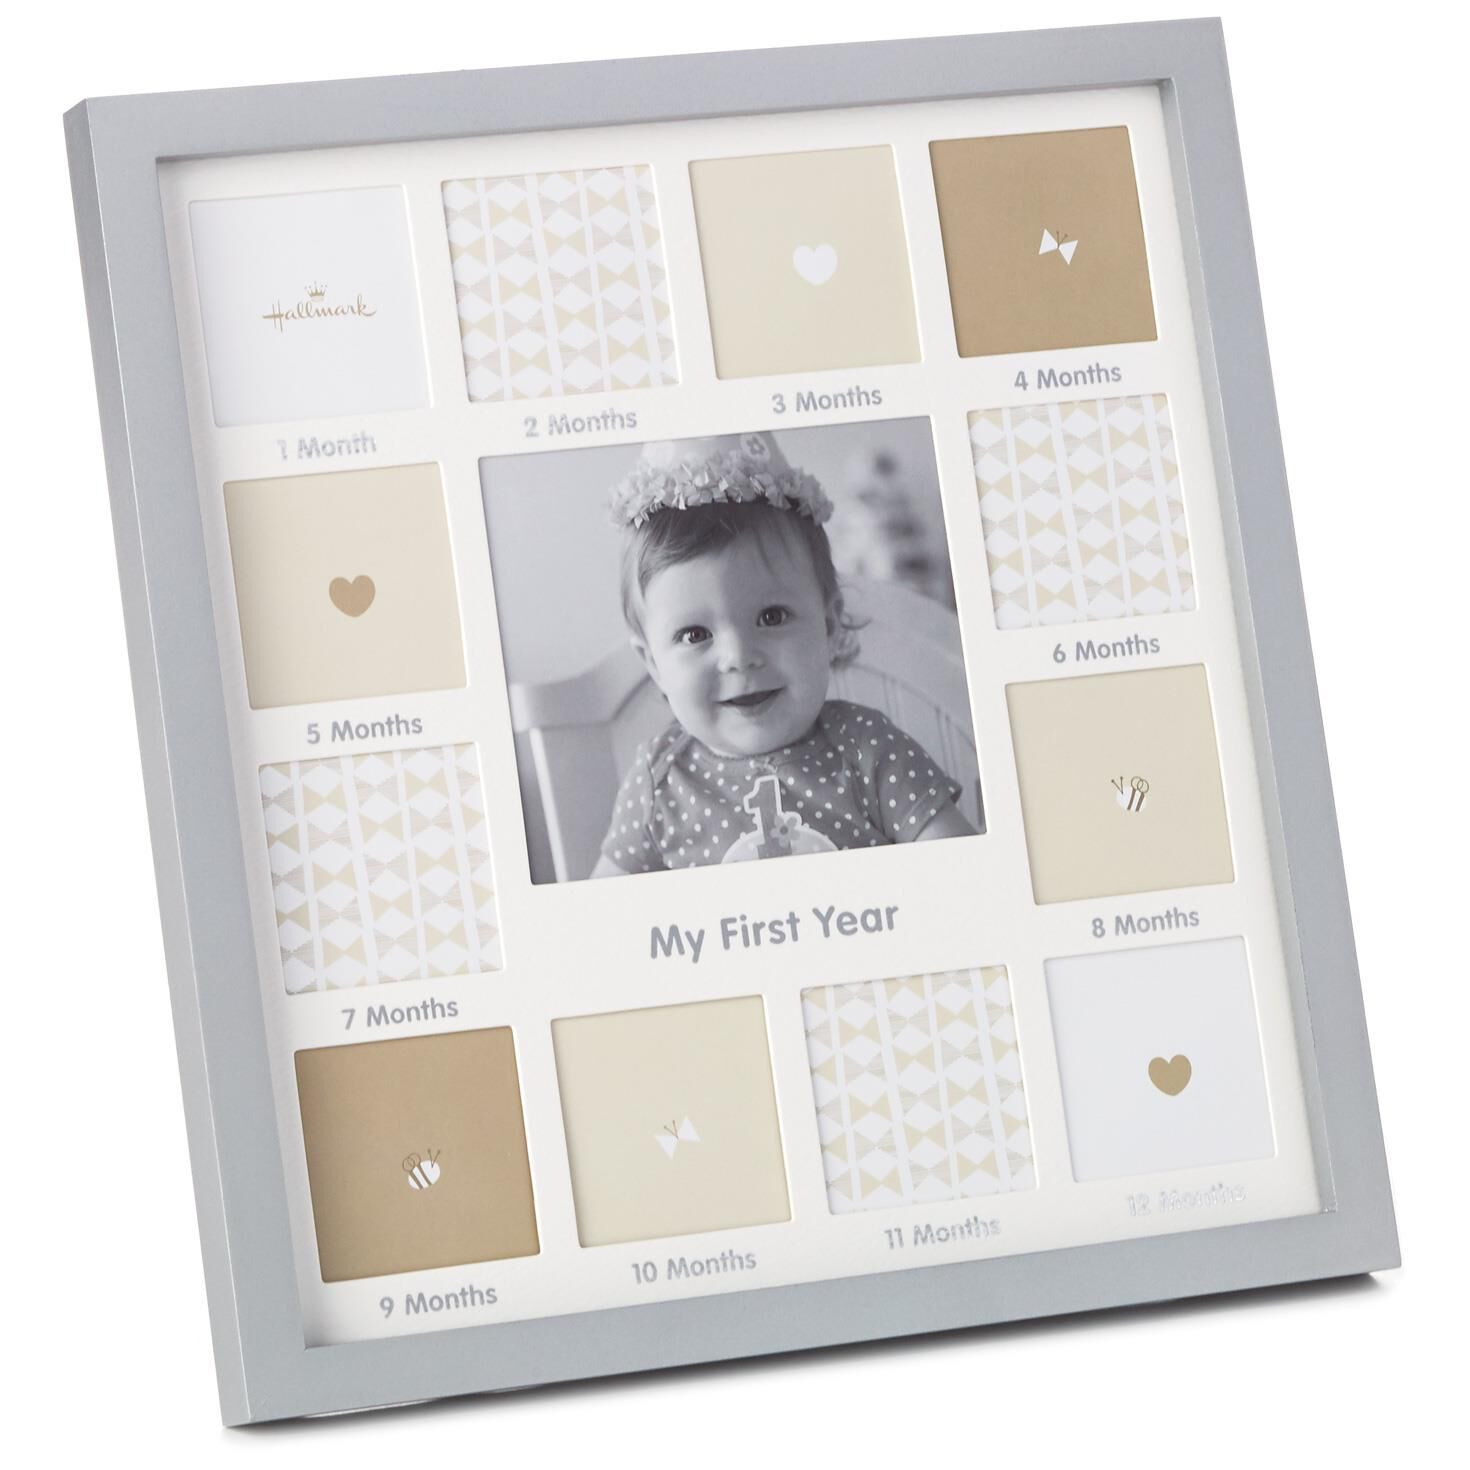 My First Year Collage Picture Frame - Picture Frames - Hallmark